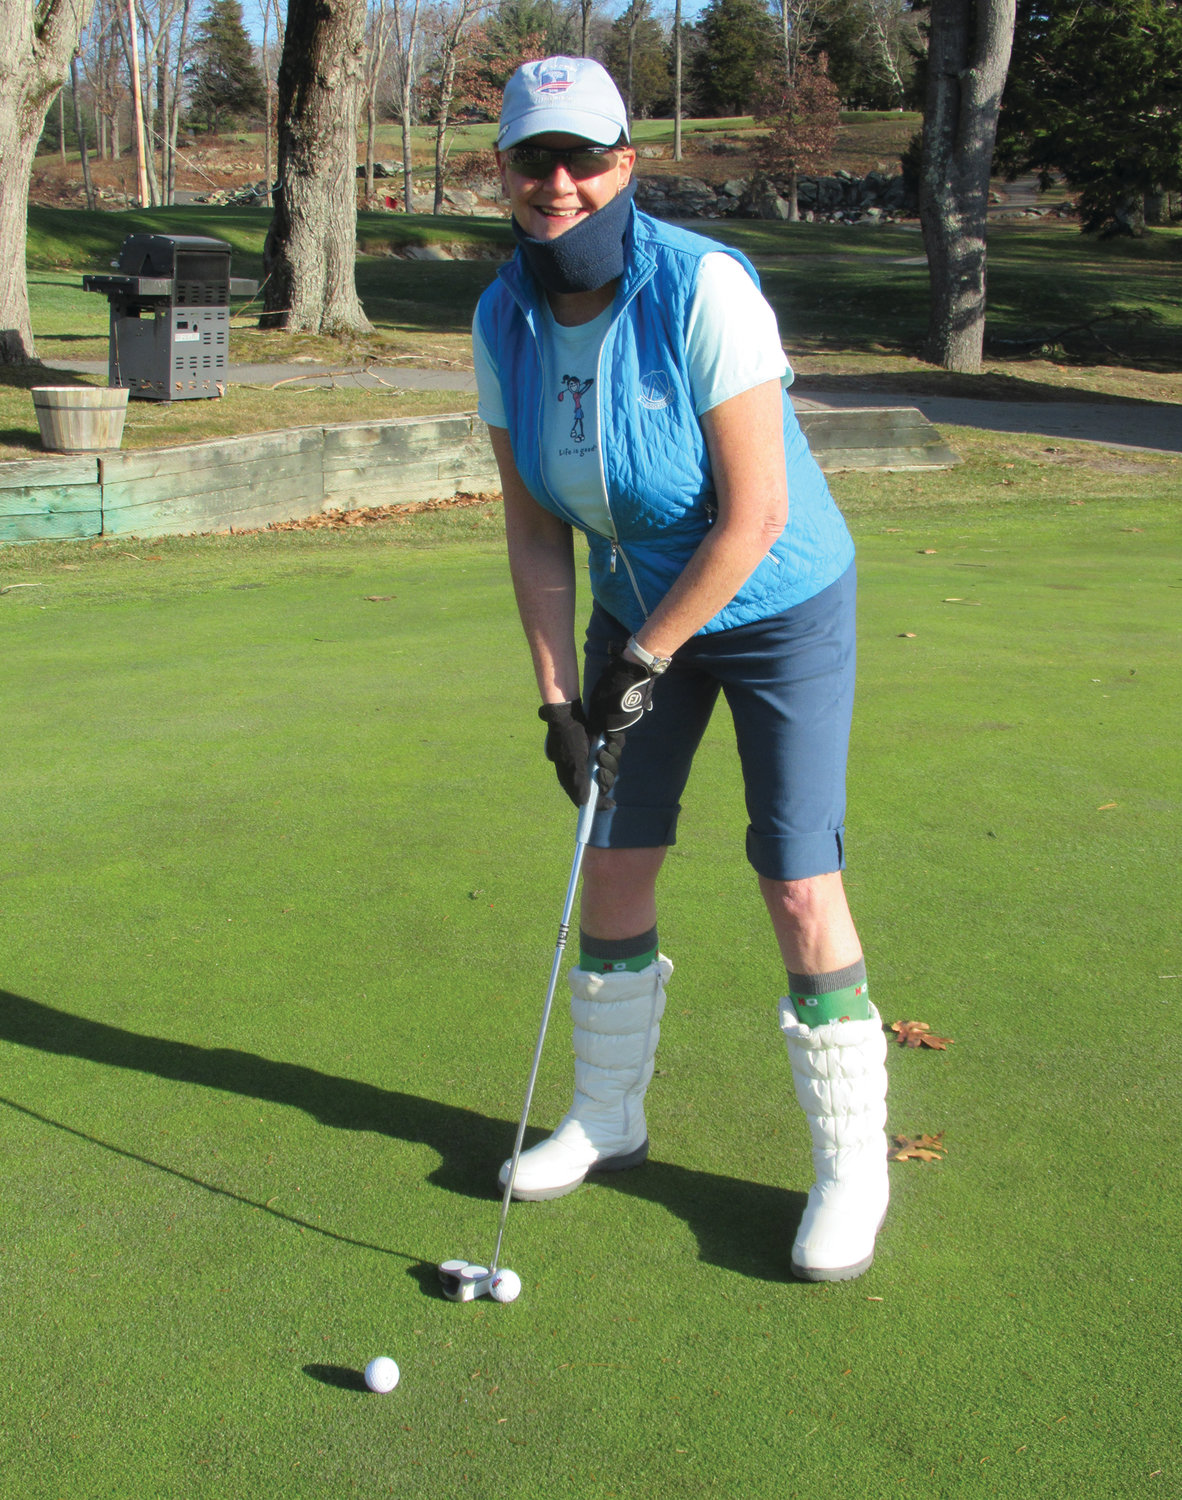 AUDREY'S ANGLE: Audrey Jorge is all smiles while warming up for the 6th Annual Polar Golf Tournament on the putting green at Glocester Country Club.